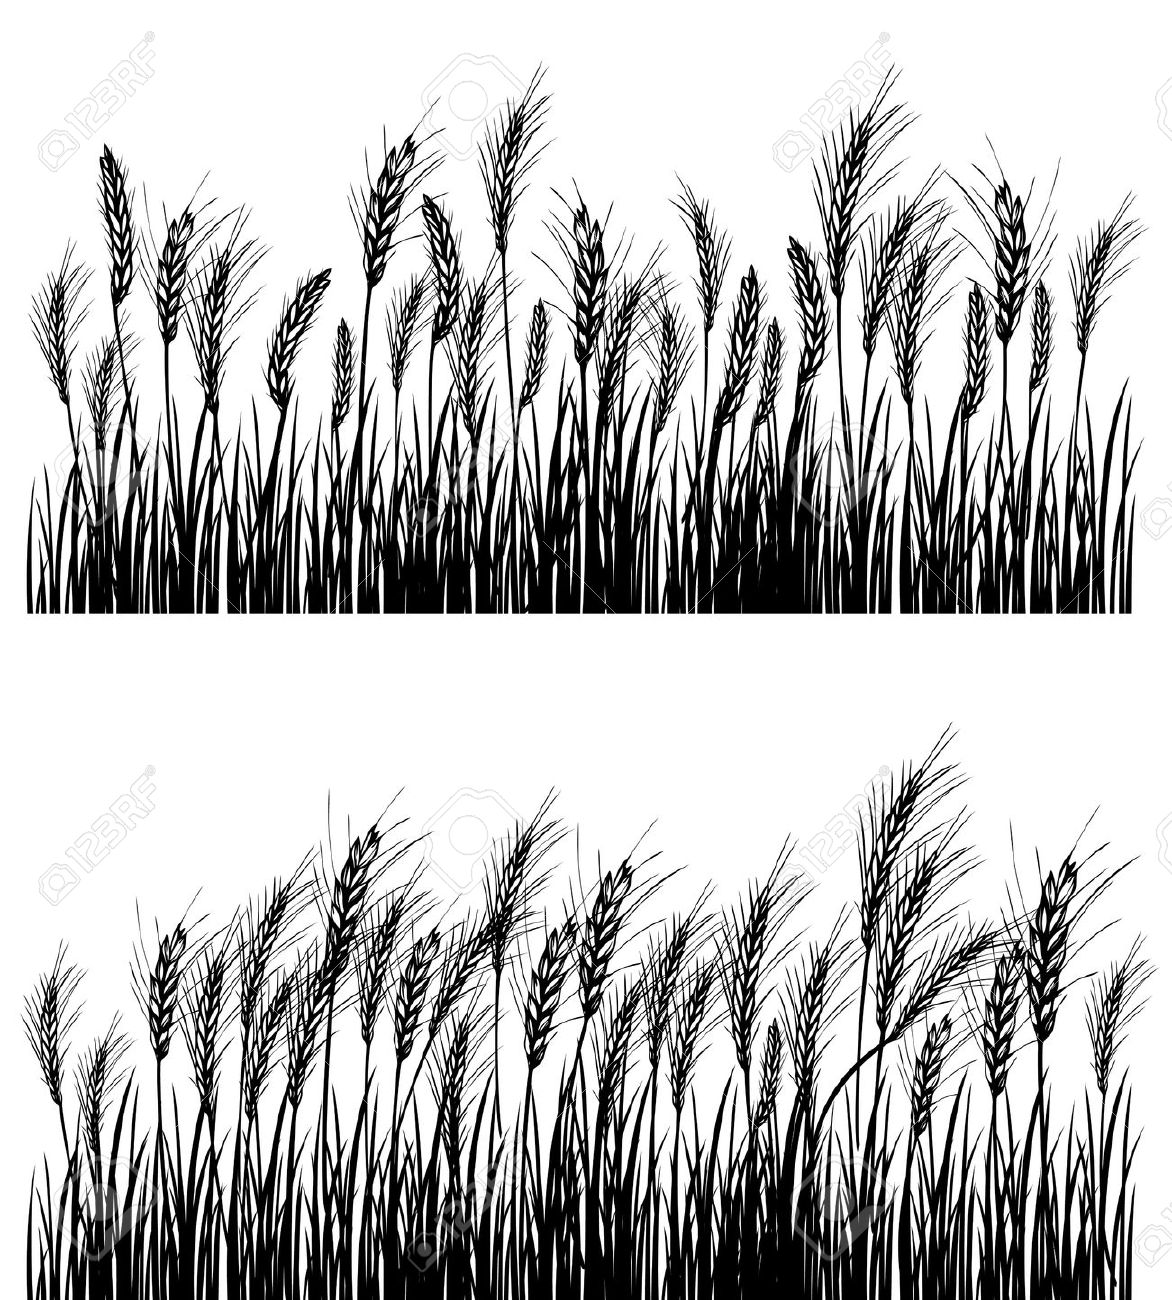 Cornfield clipart wheat plant Black white white black and